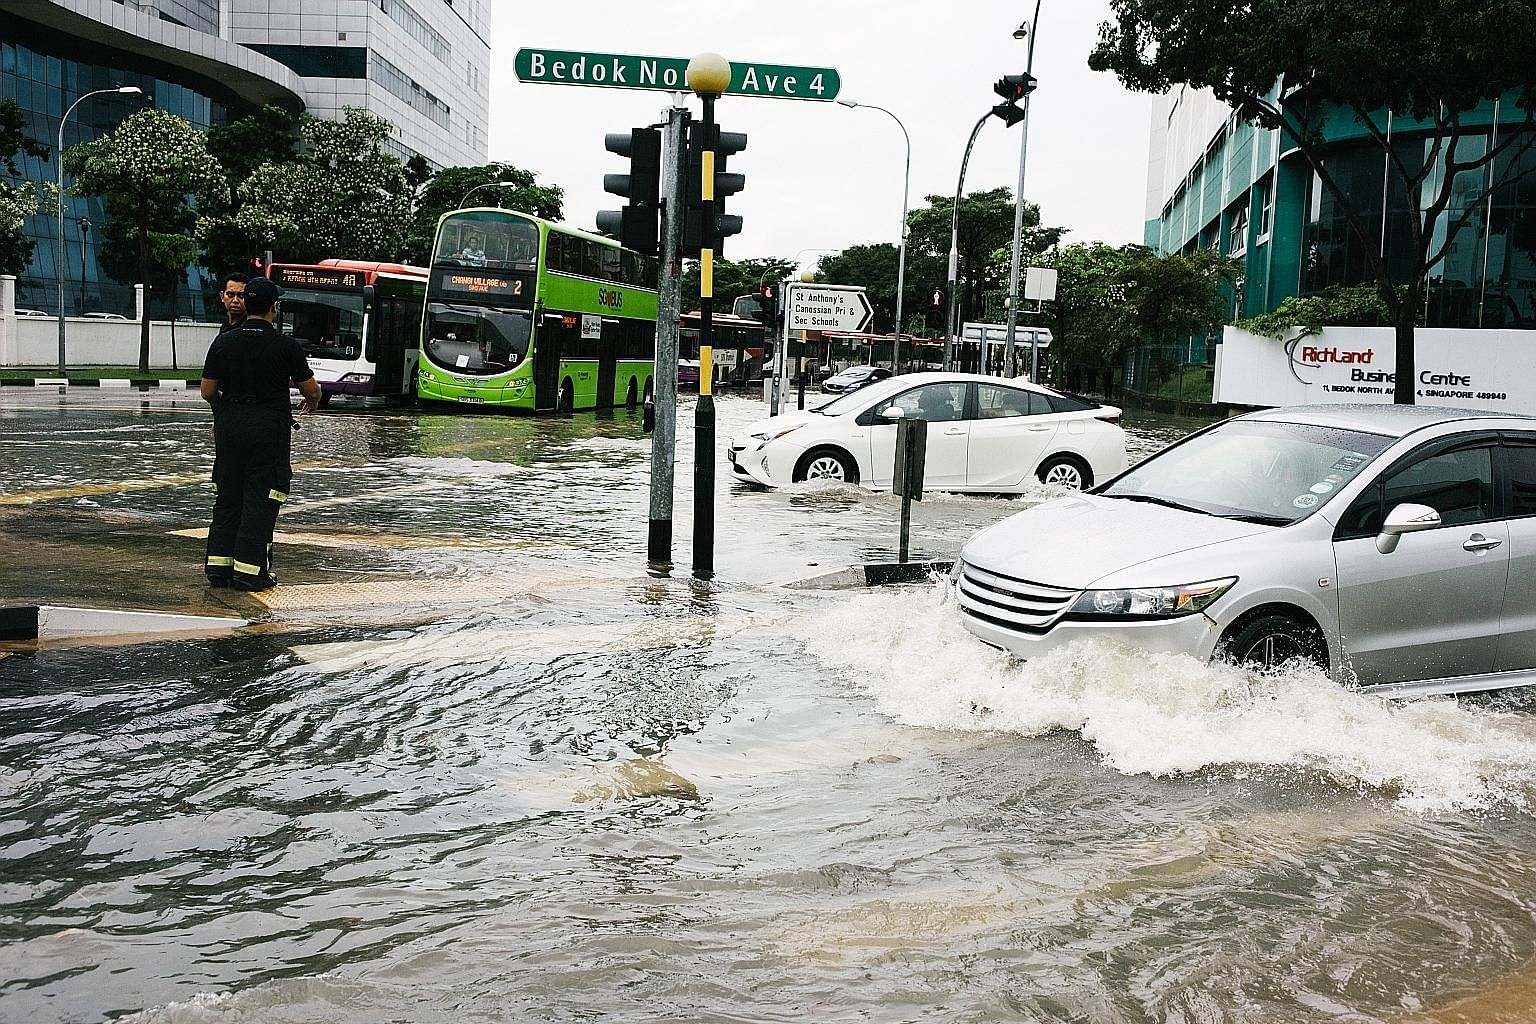 Singapore is already seeing some of the effects of climate change, including more intense rainfall and prolonged dry spells. Prime Minister Lee Hsien Loong noted that current projections are that sea levels will rise by up to 1m by the end of the cen